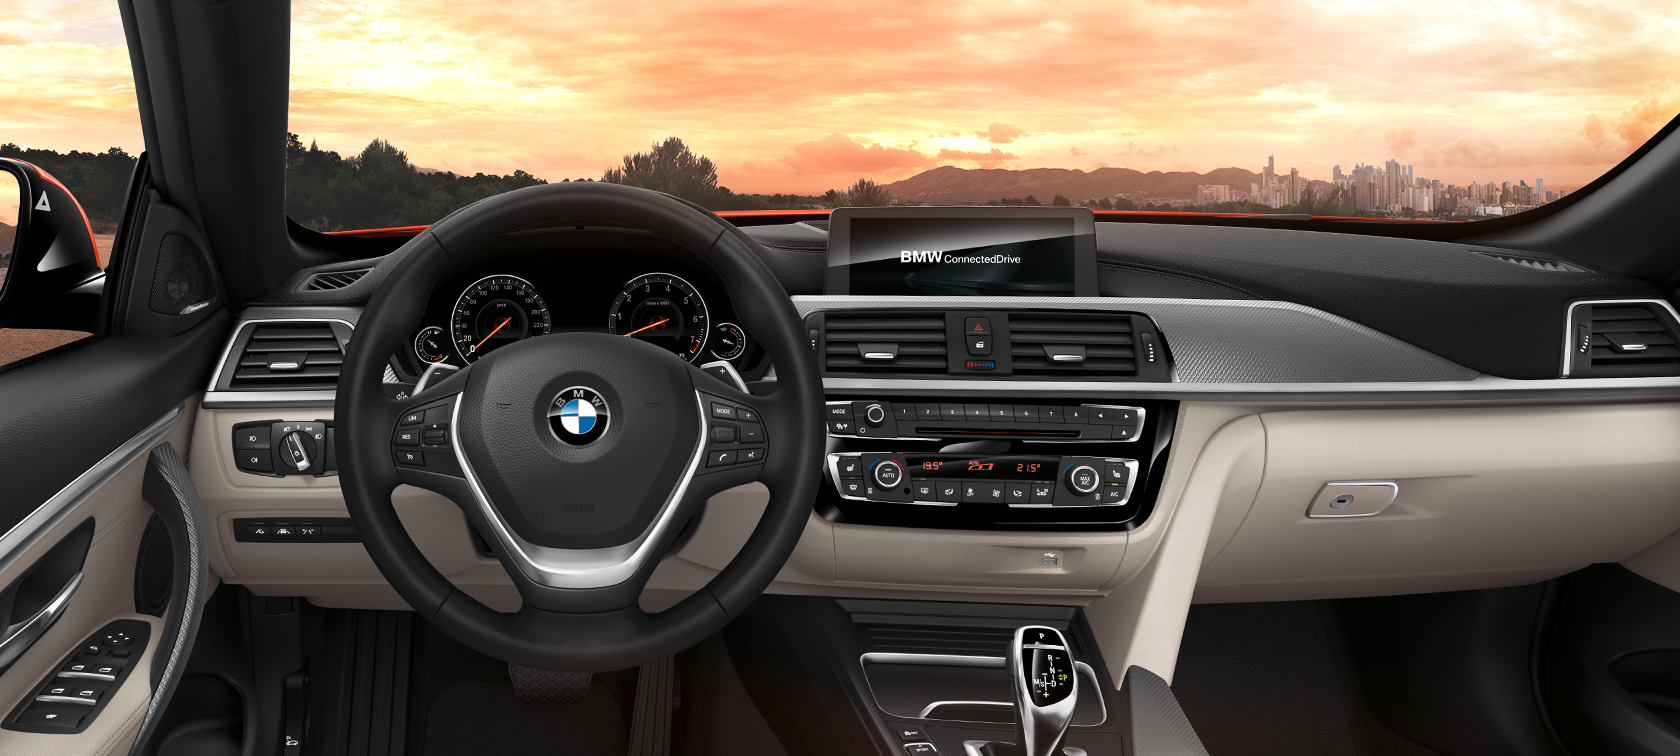 BMW 4-Series Convertible grey and black car interior: steering wheel